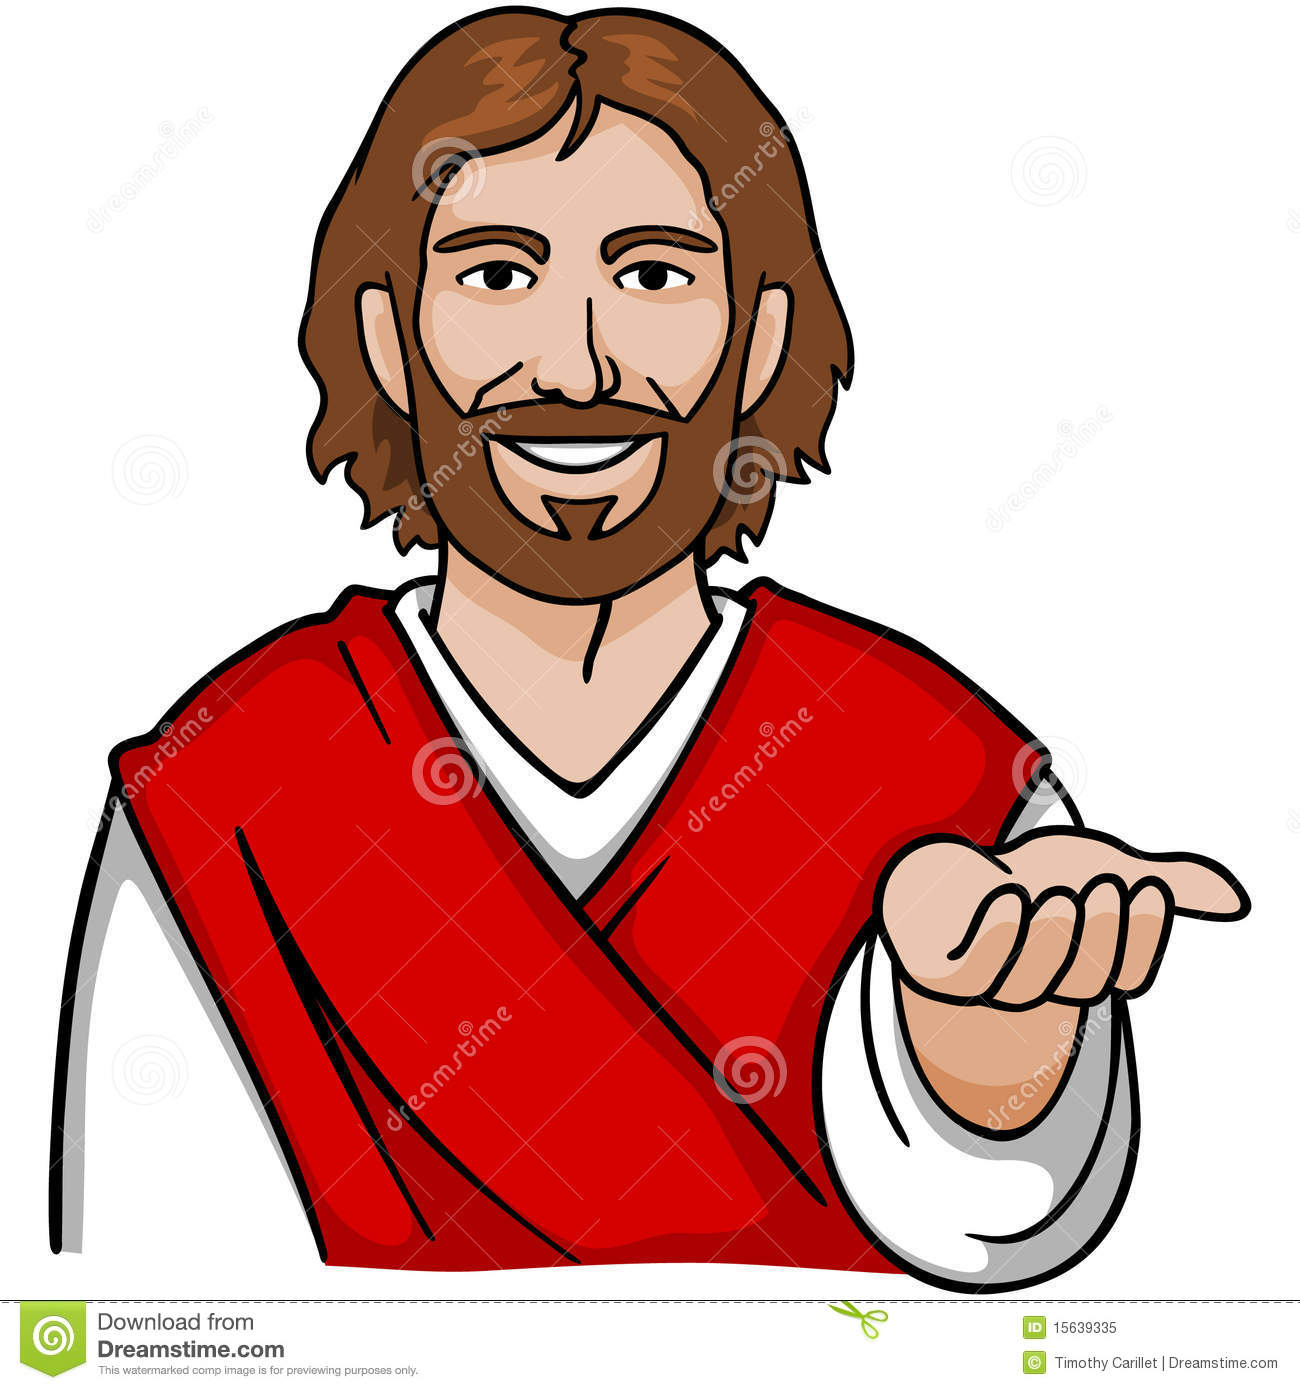 Jesus clipart Jesus Face Clipart Jesus Clipart Clip clipart free